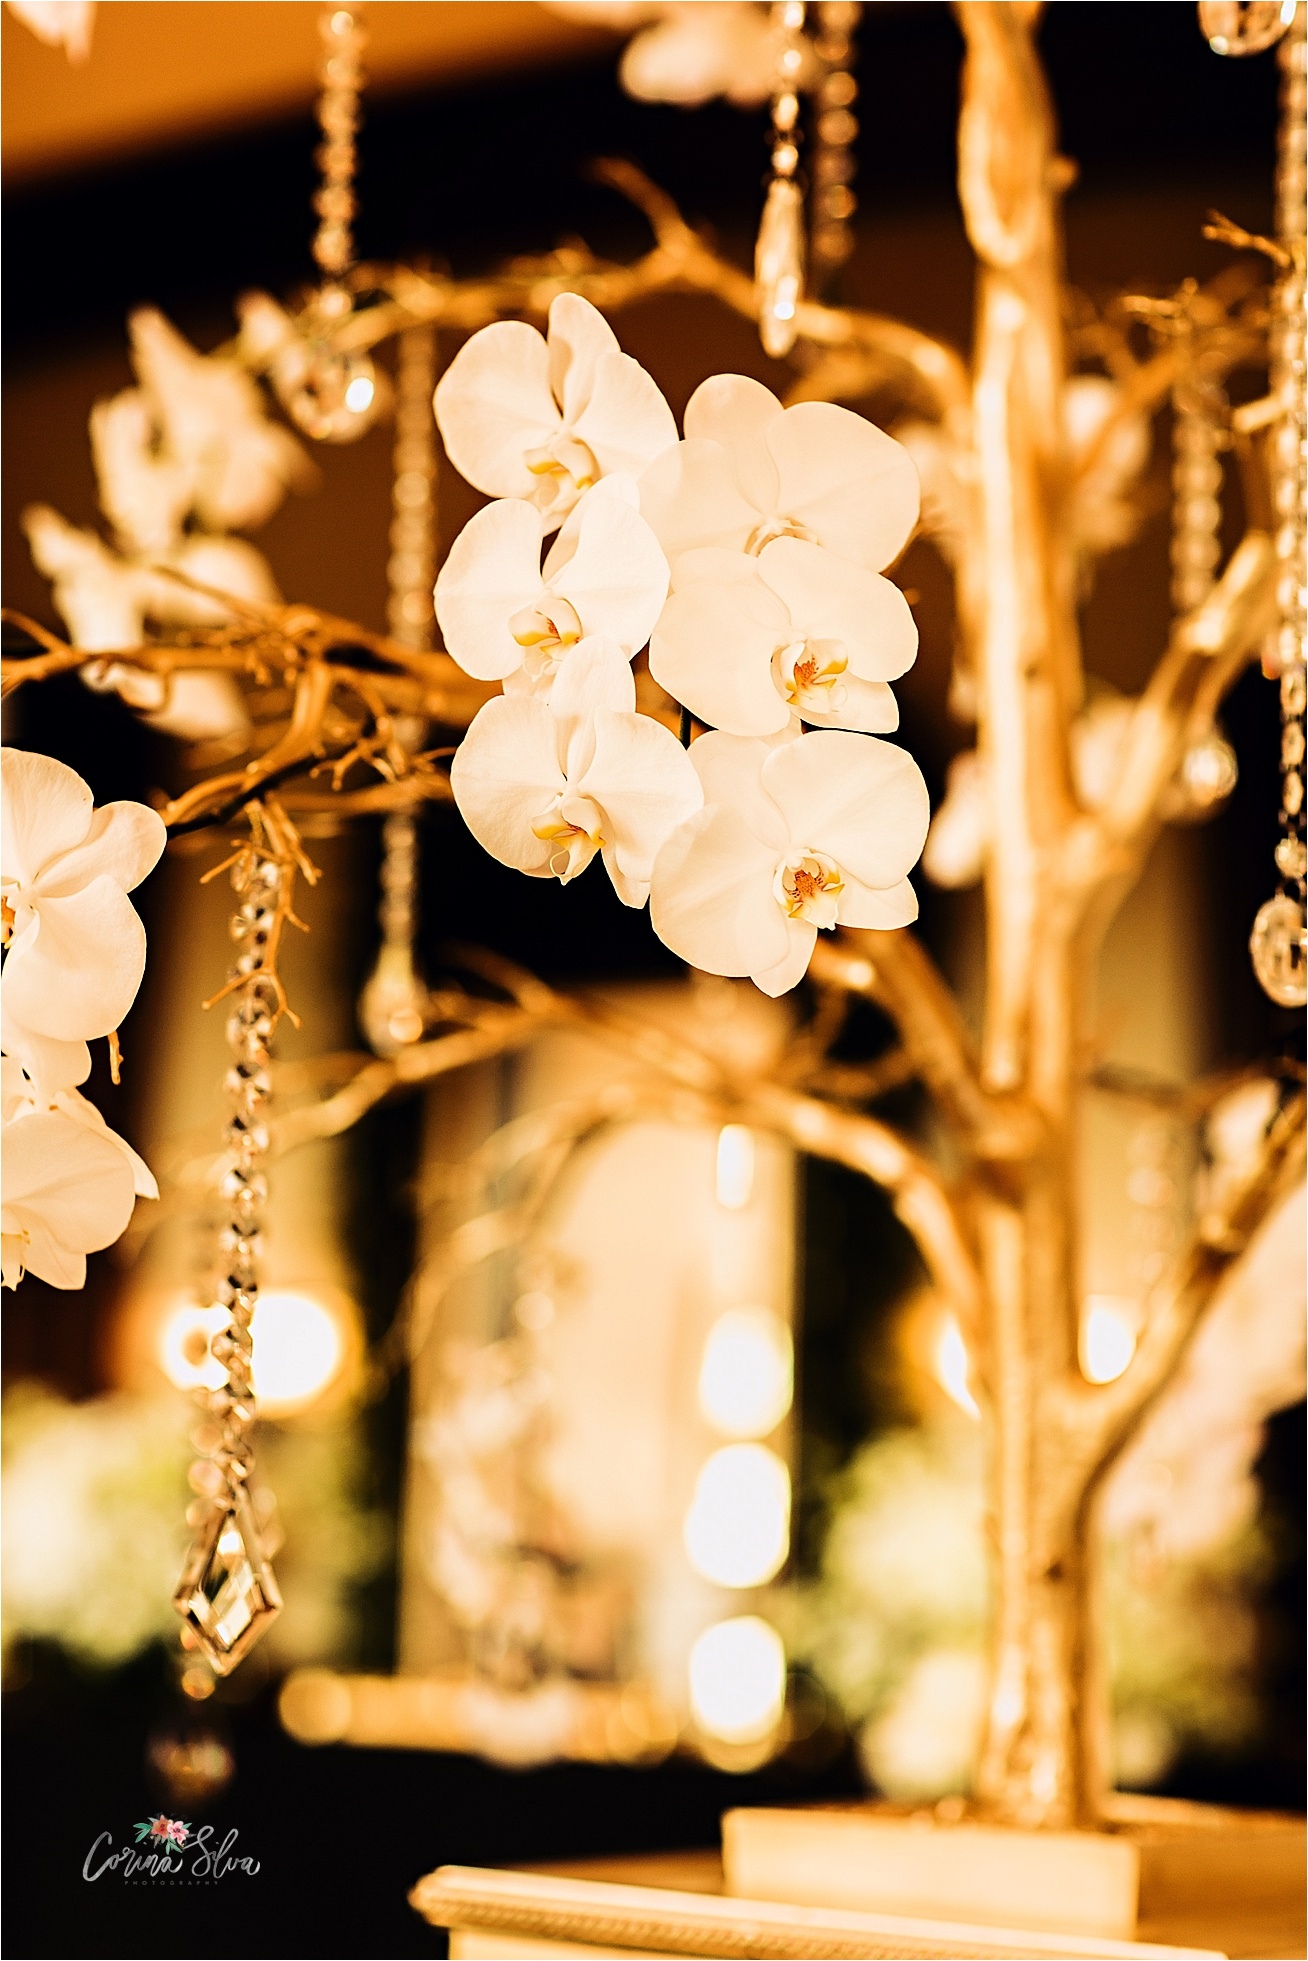 RSG-Event-and-Designs-luxury-wedding-decor-photos, Corina-Silva-Studios_0006.jpg